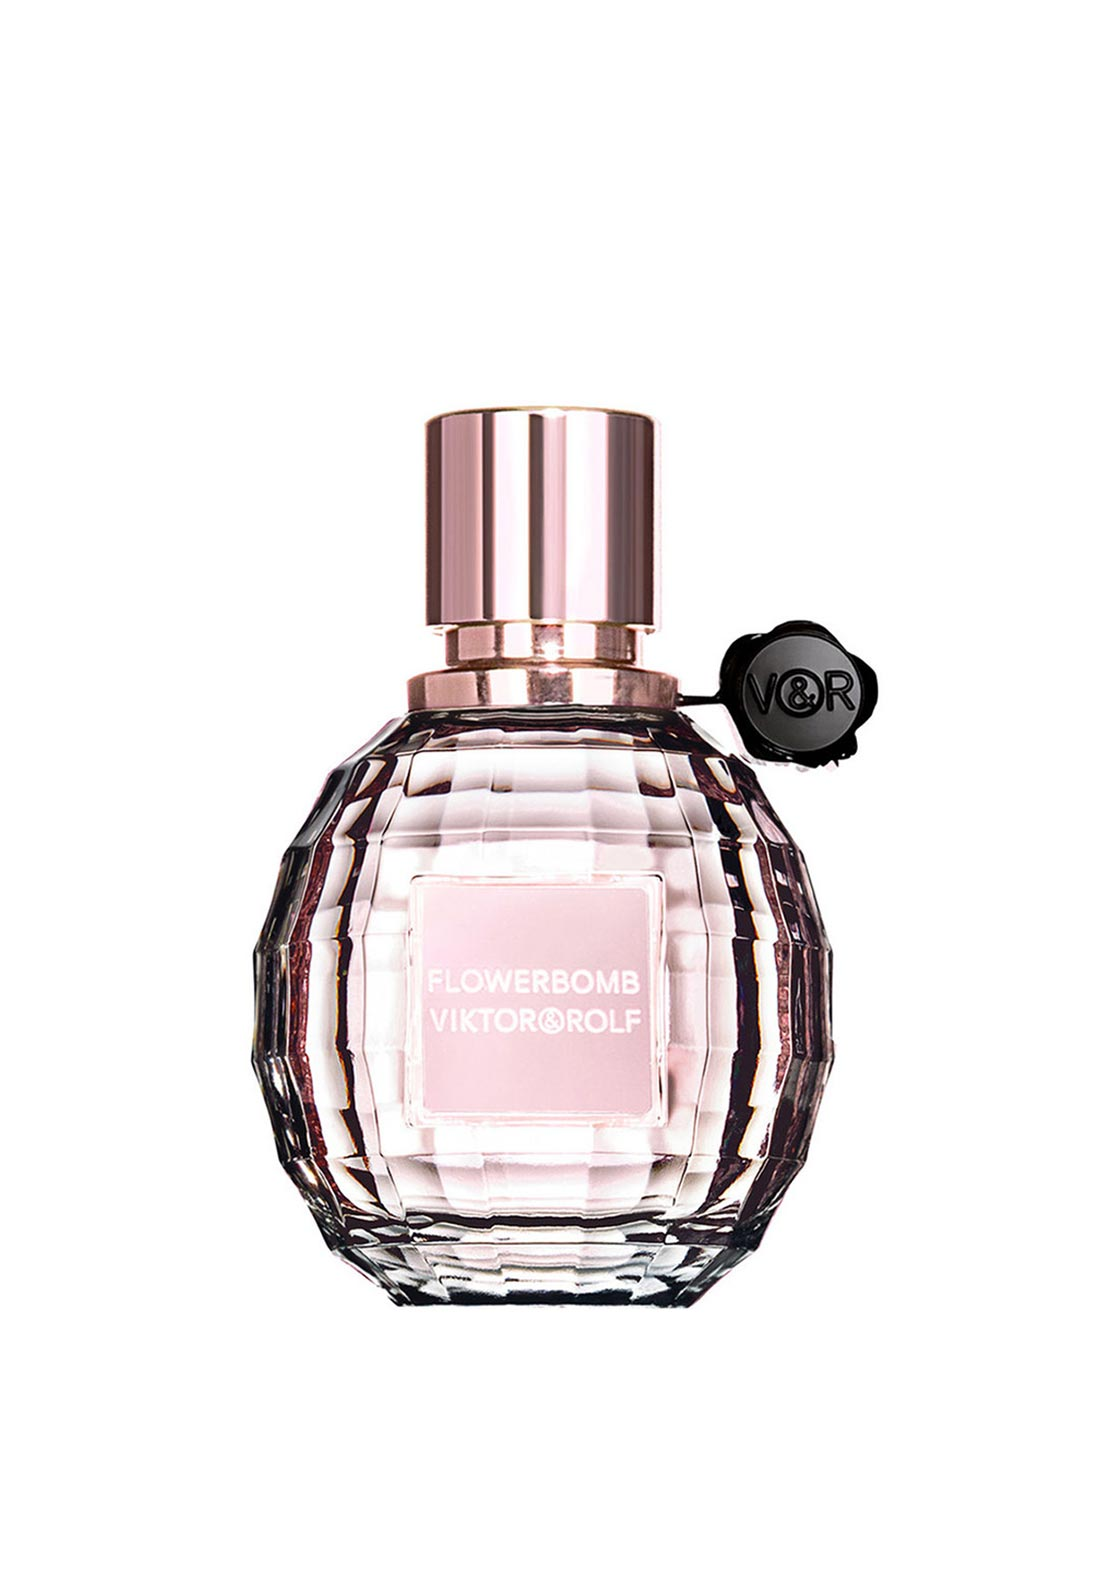 Viktor & Rolf Flowerbomb Eau De Toilette Natural Spray, 50ml